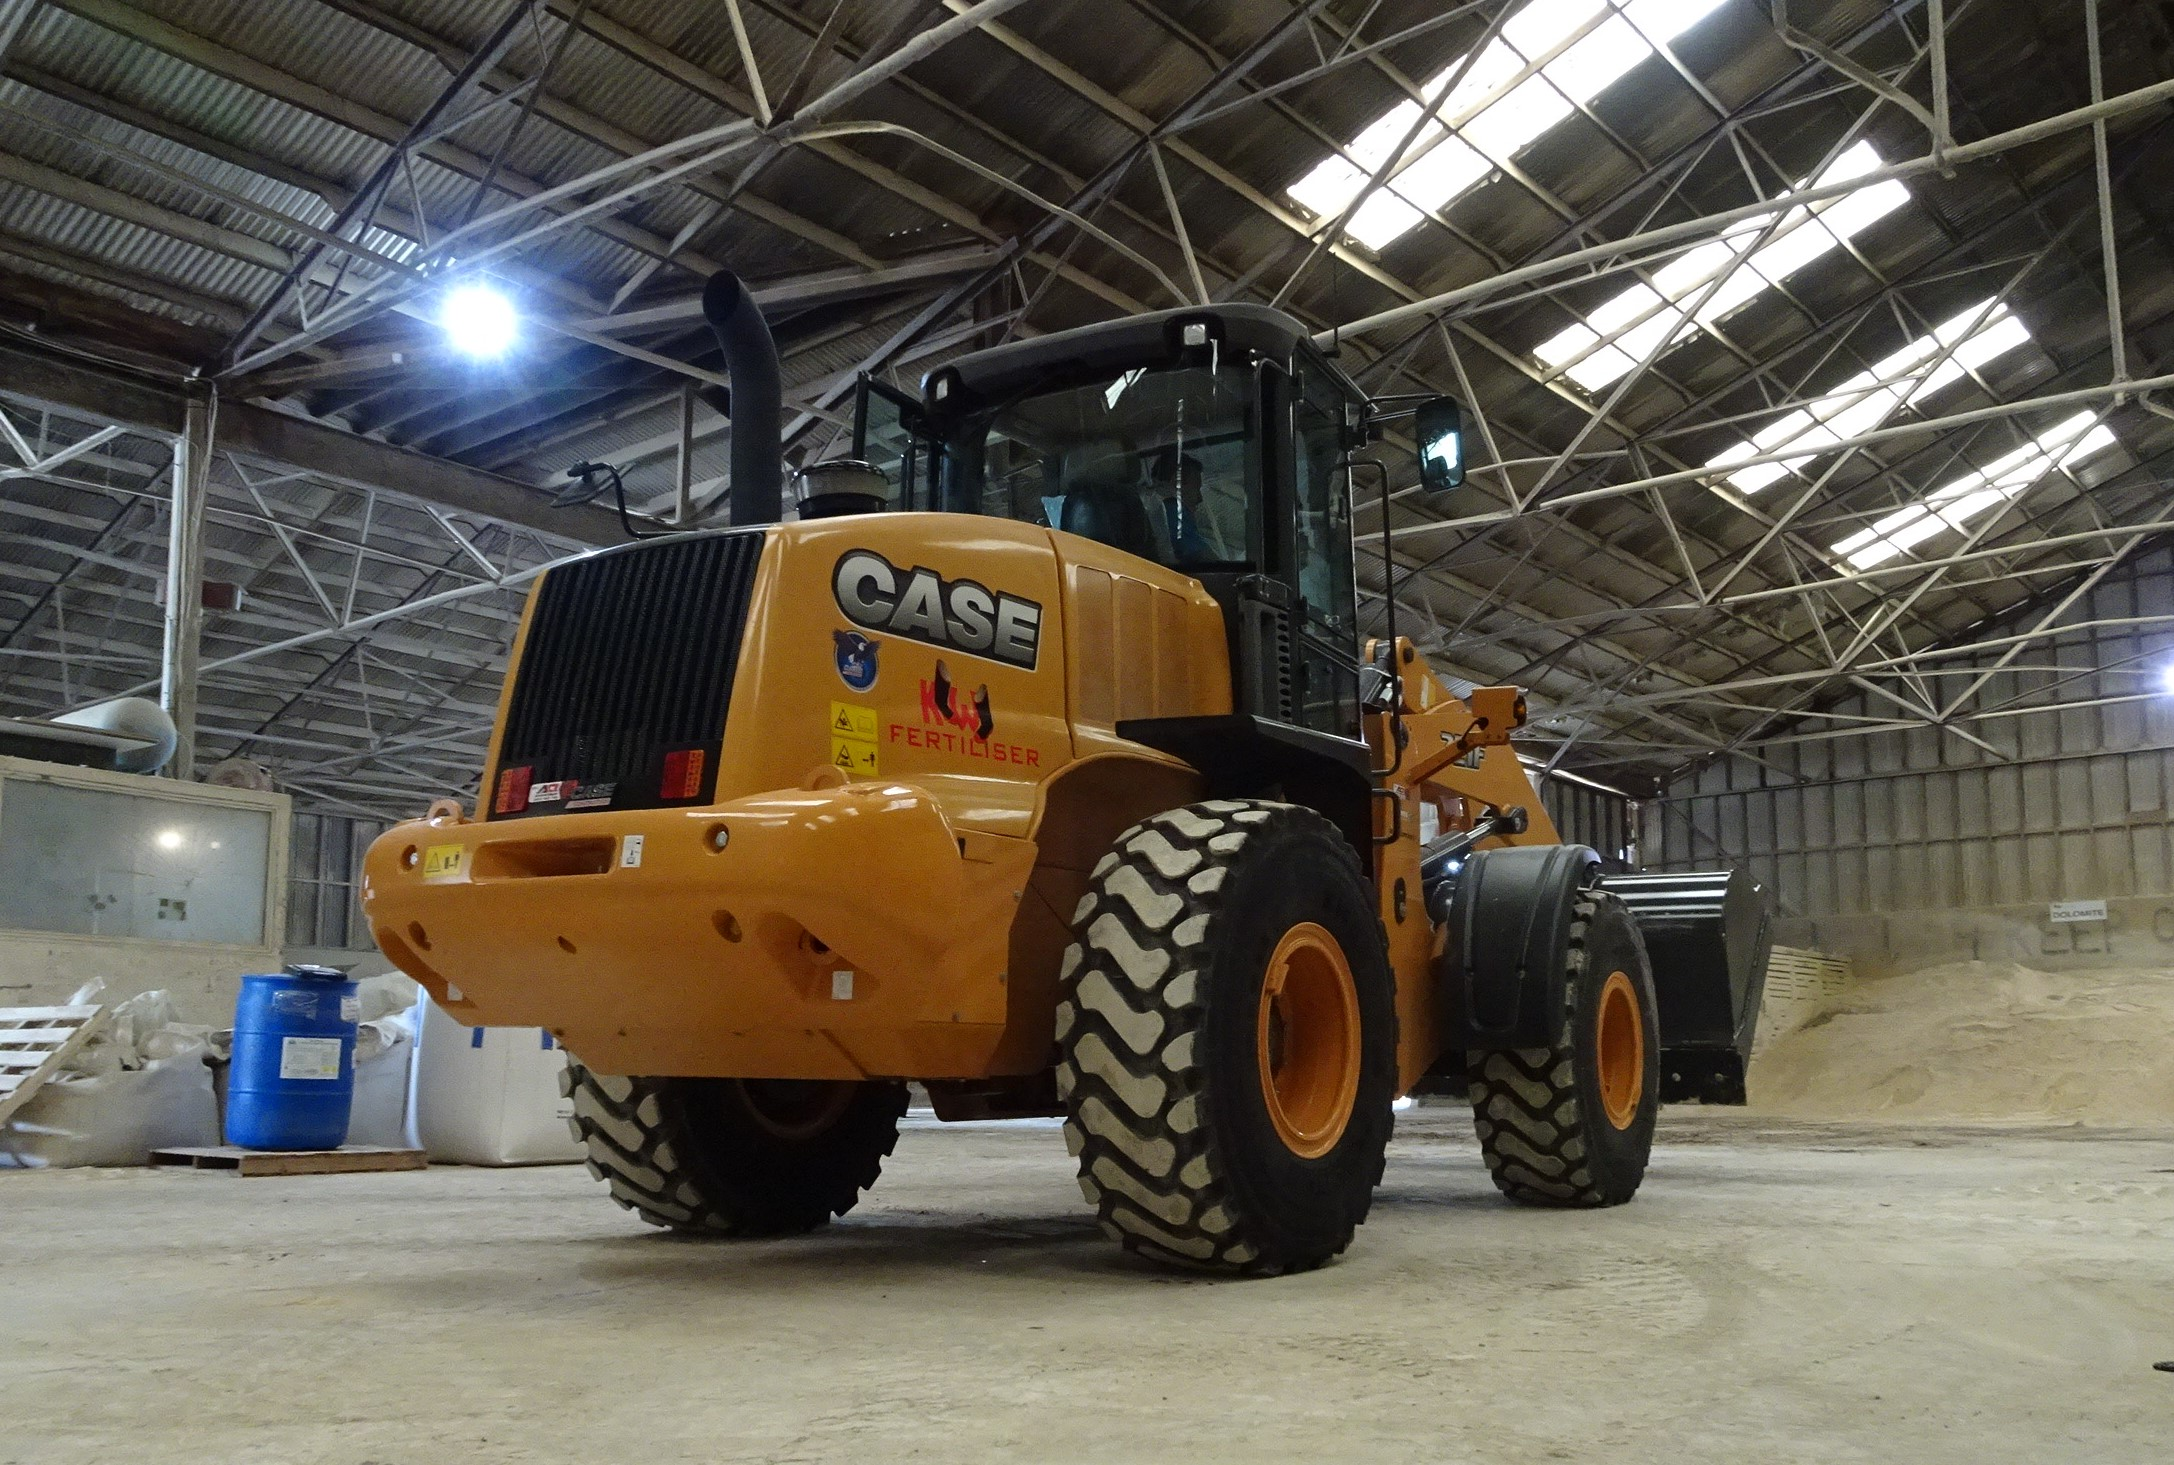 Kiwi Fertiliser Case 721F Wheel Loader